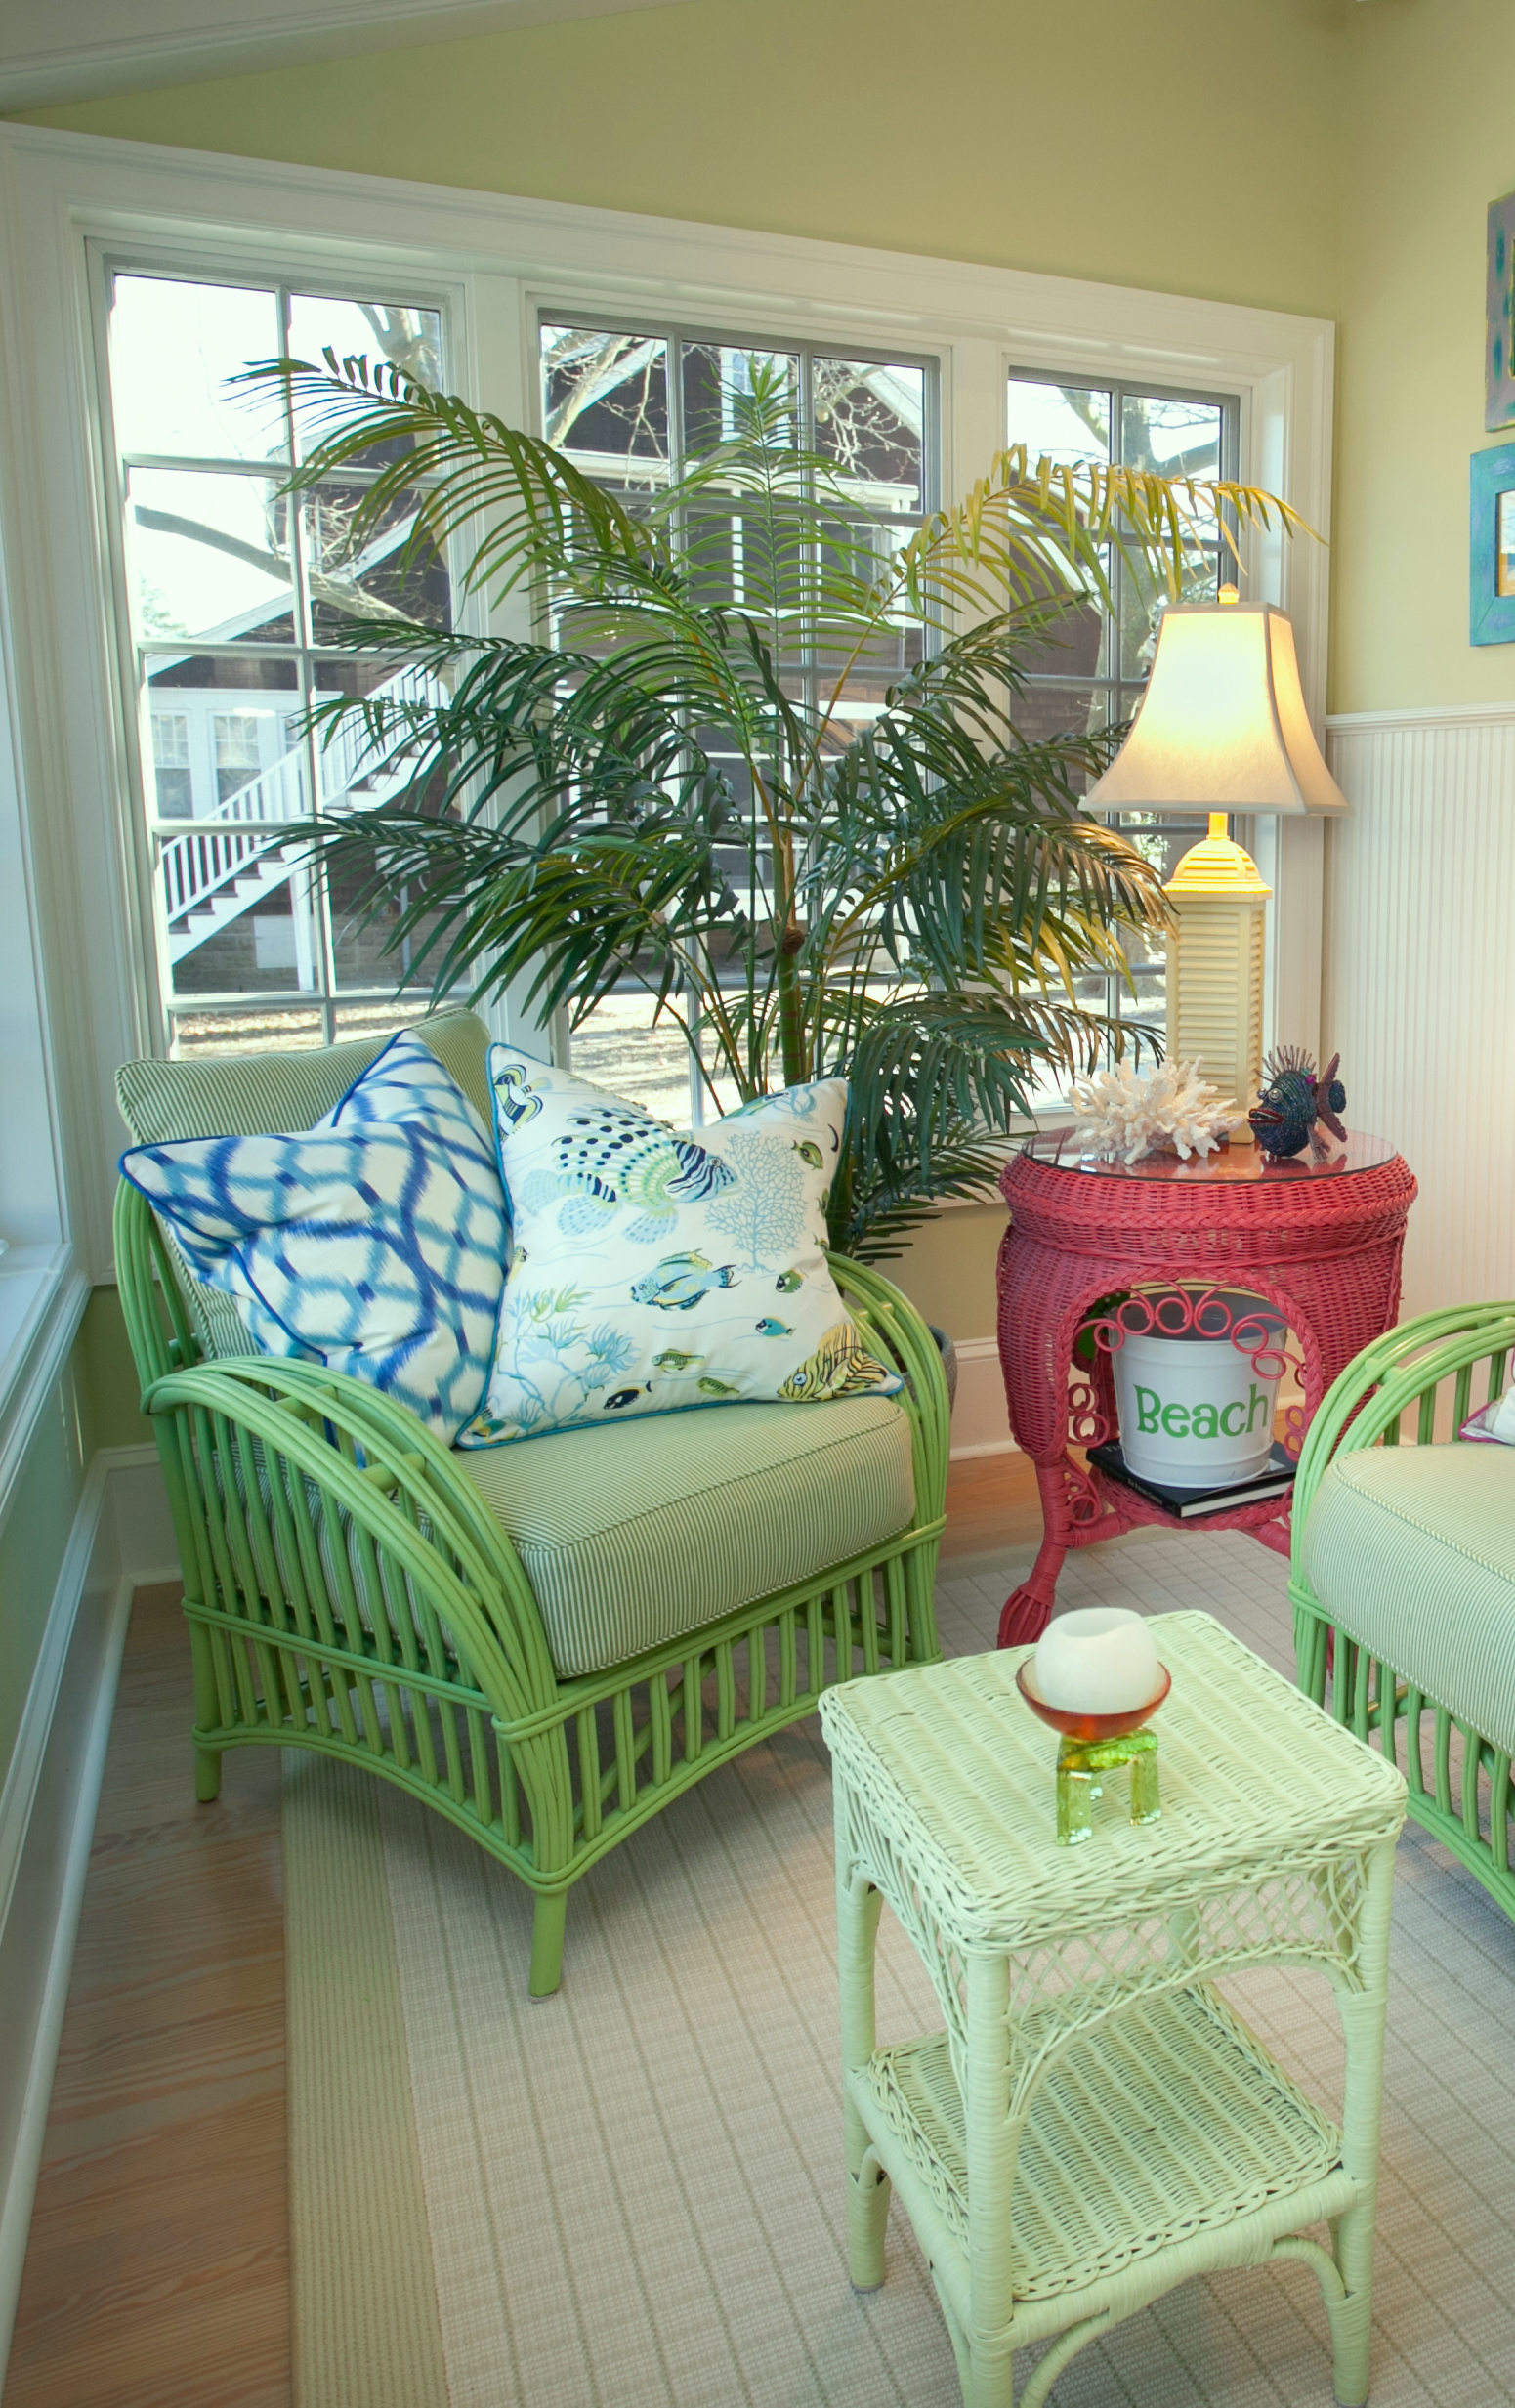 Sun Porch In Beach Colors Coastal Decor Ideas Beach Porch